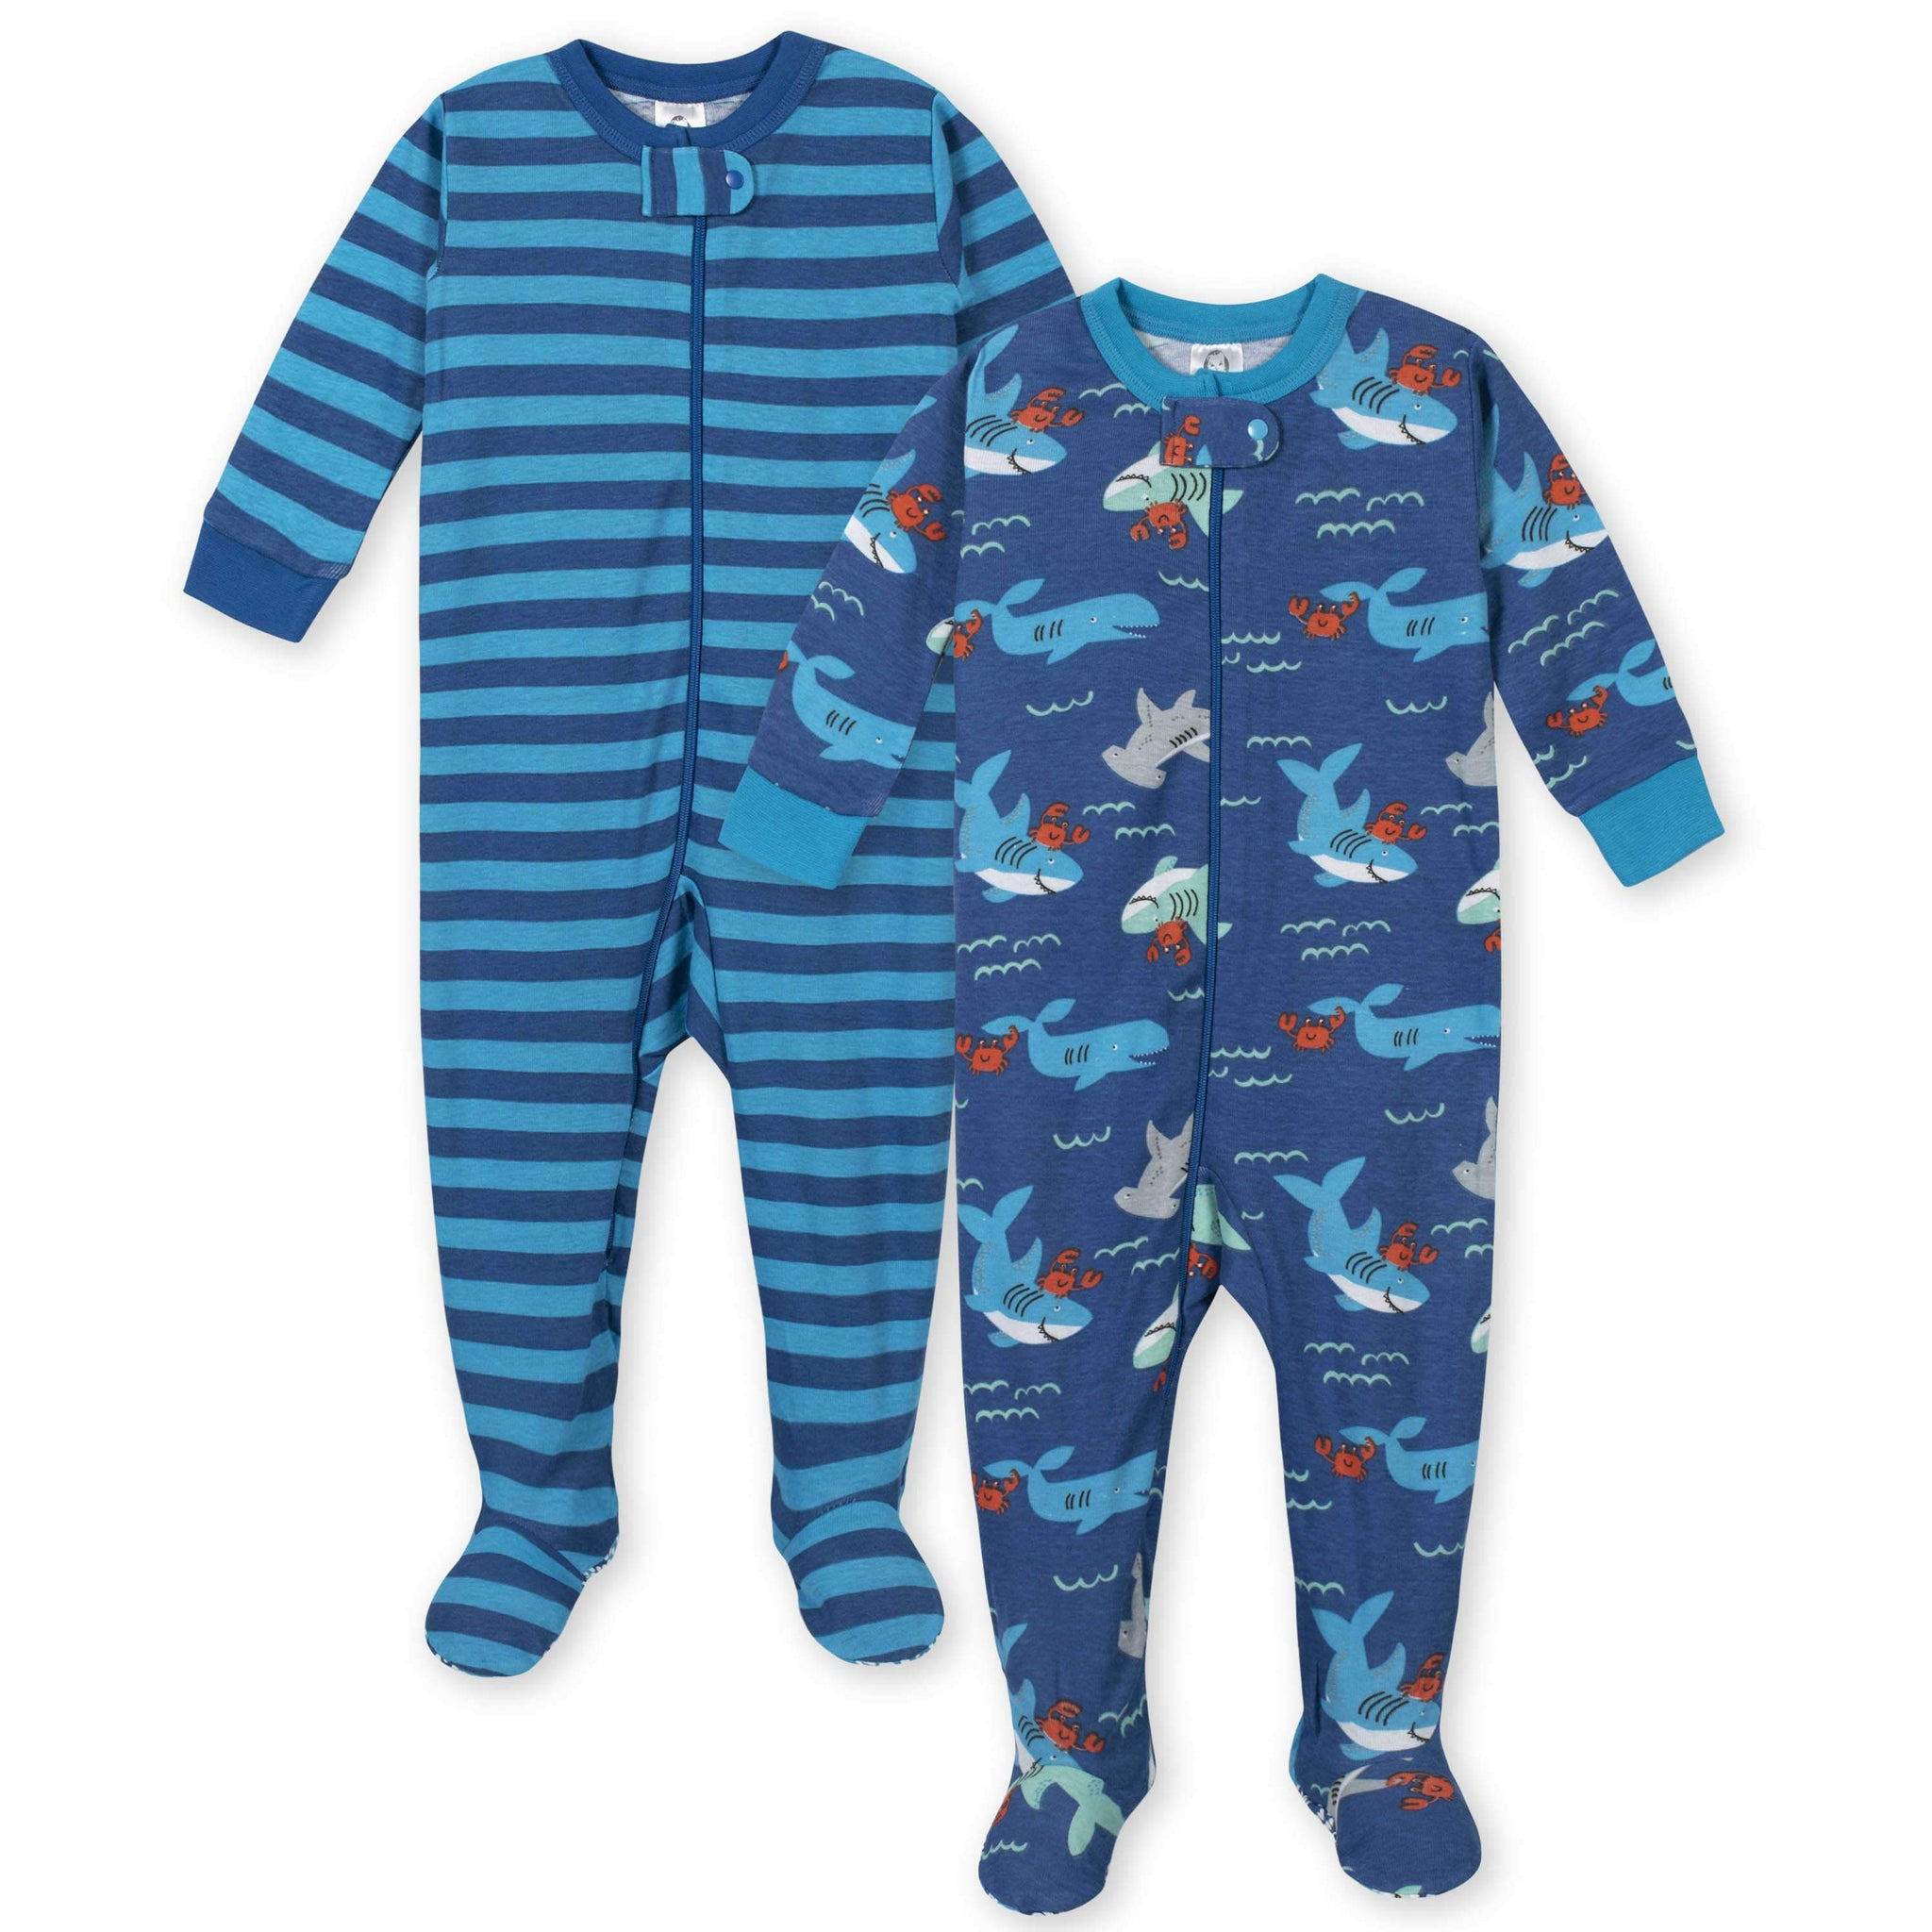 2-Pack Boys Under the Sea Footed Pajamas